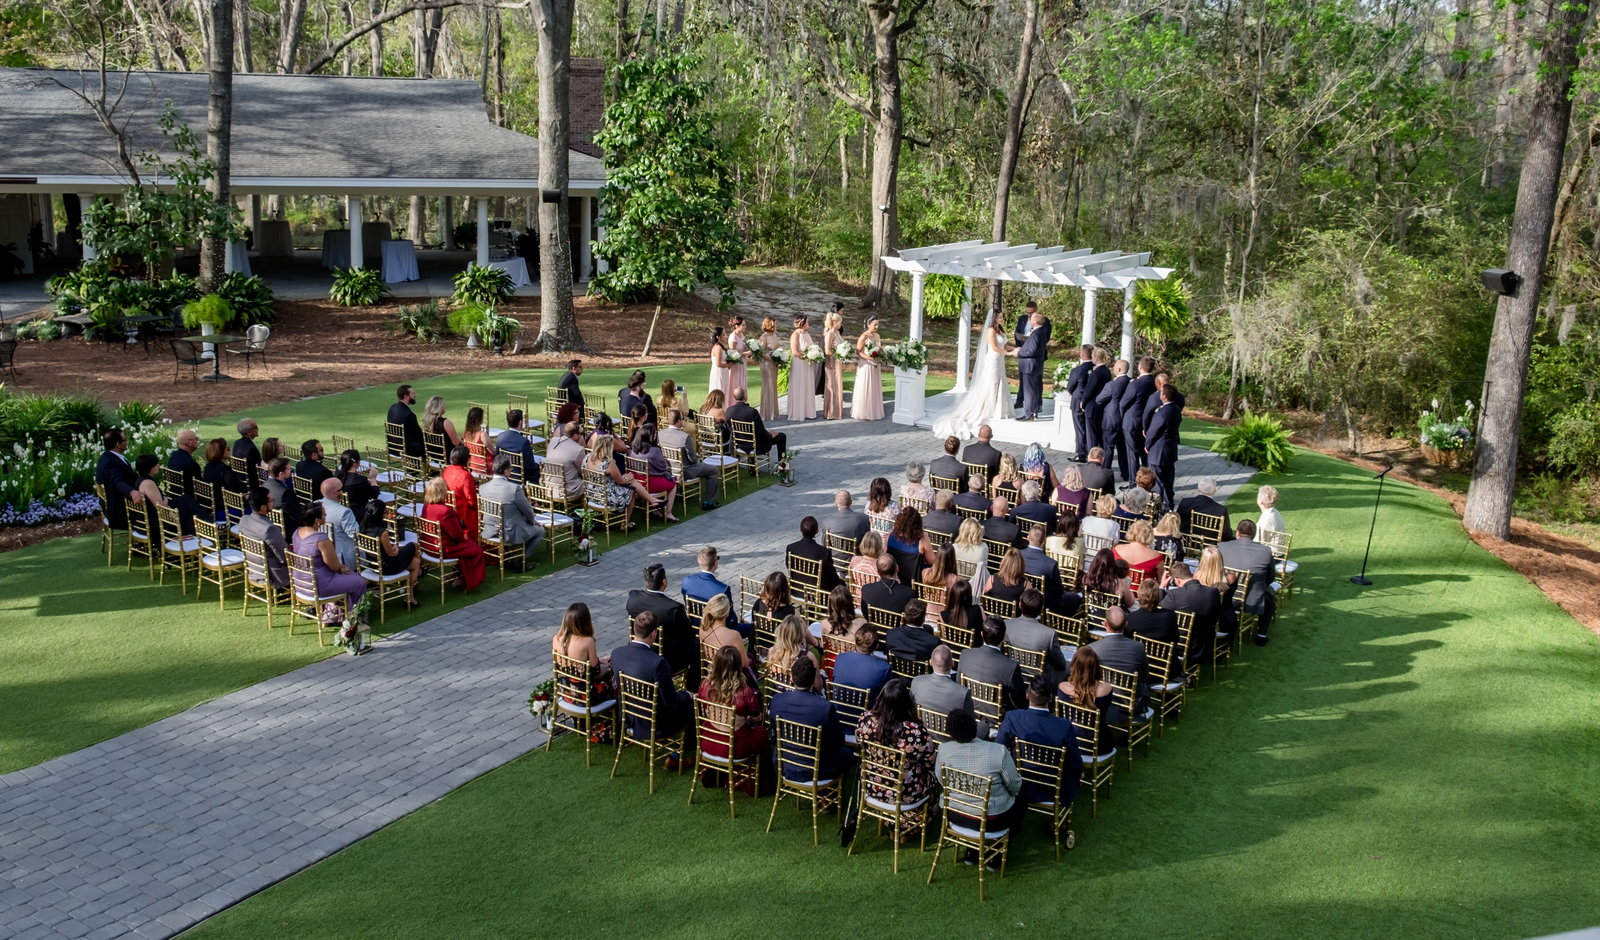 Flor + Aaron, Mackey House Wedding, Bobbi Brinkman Photography